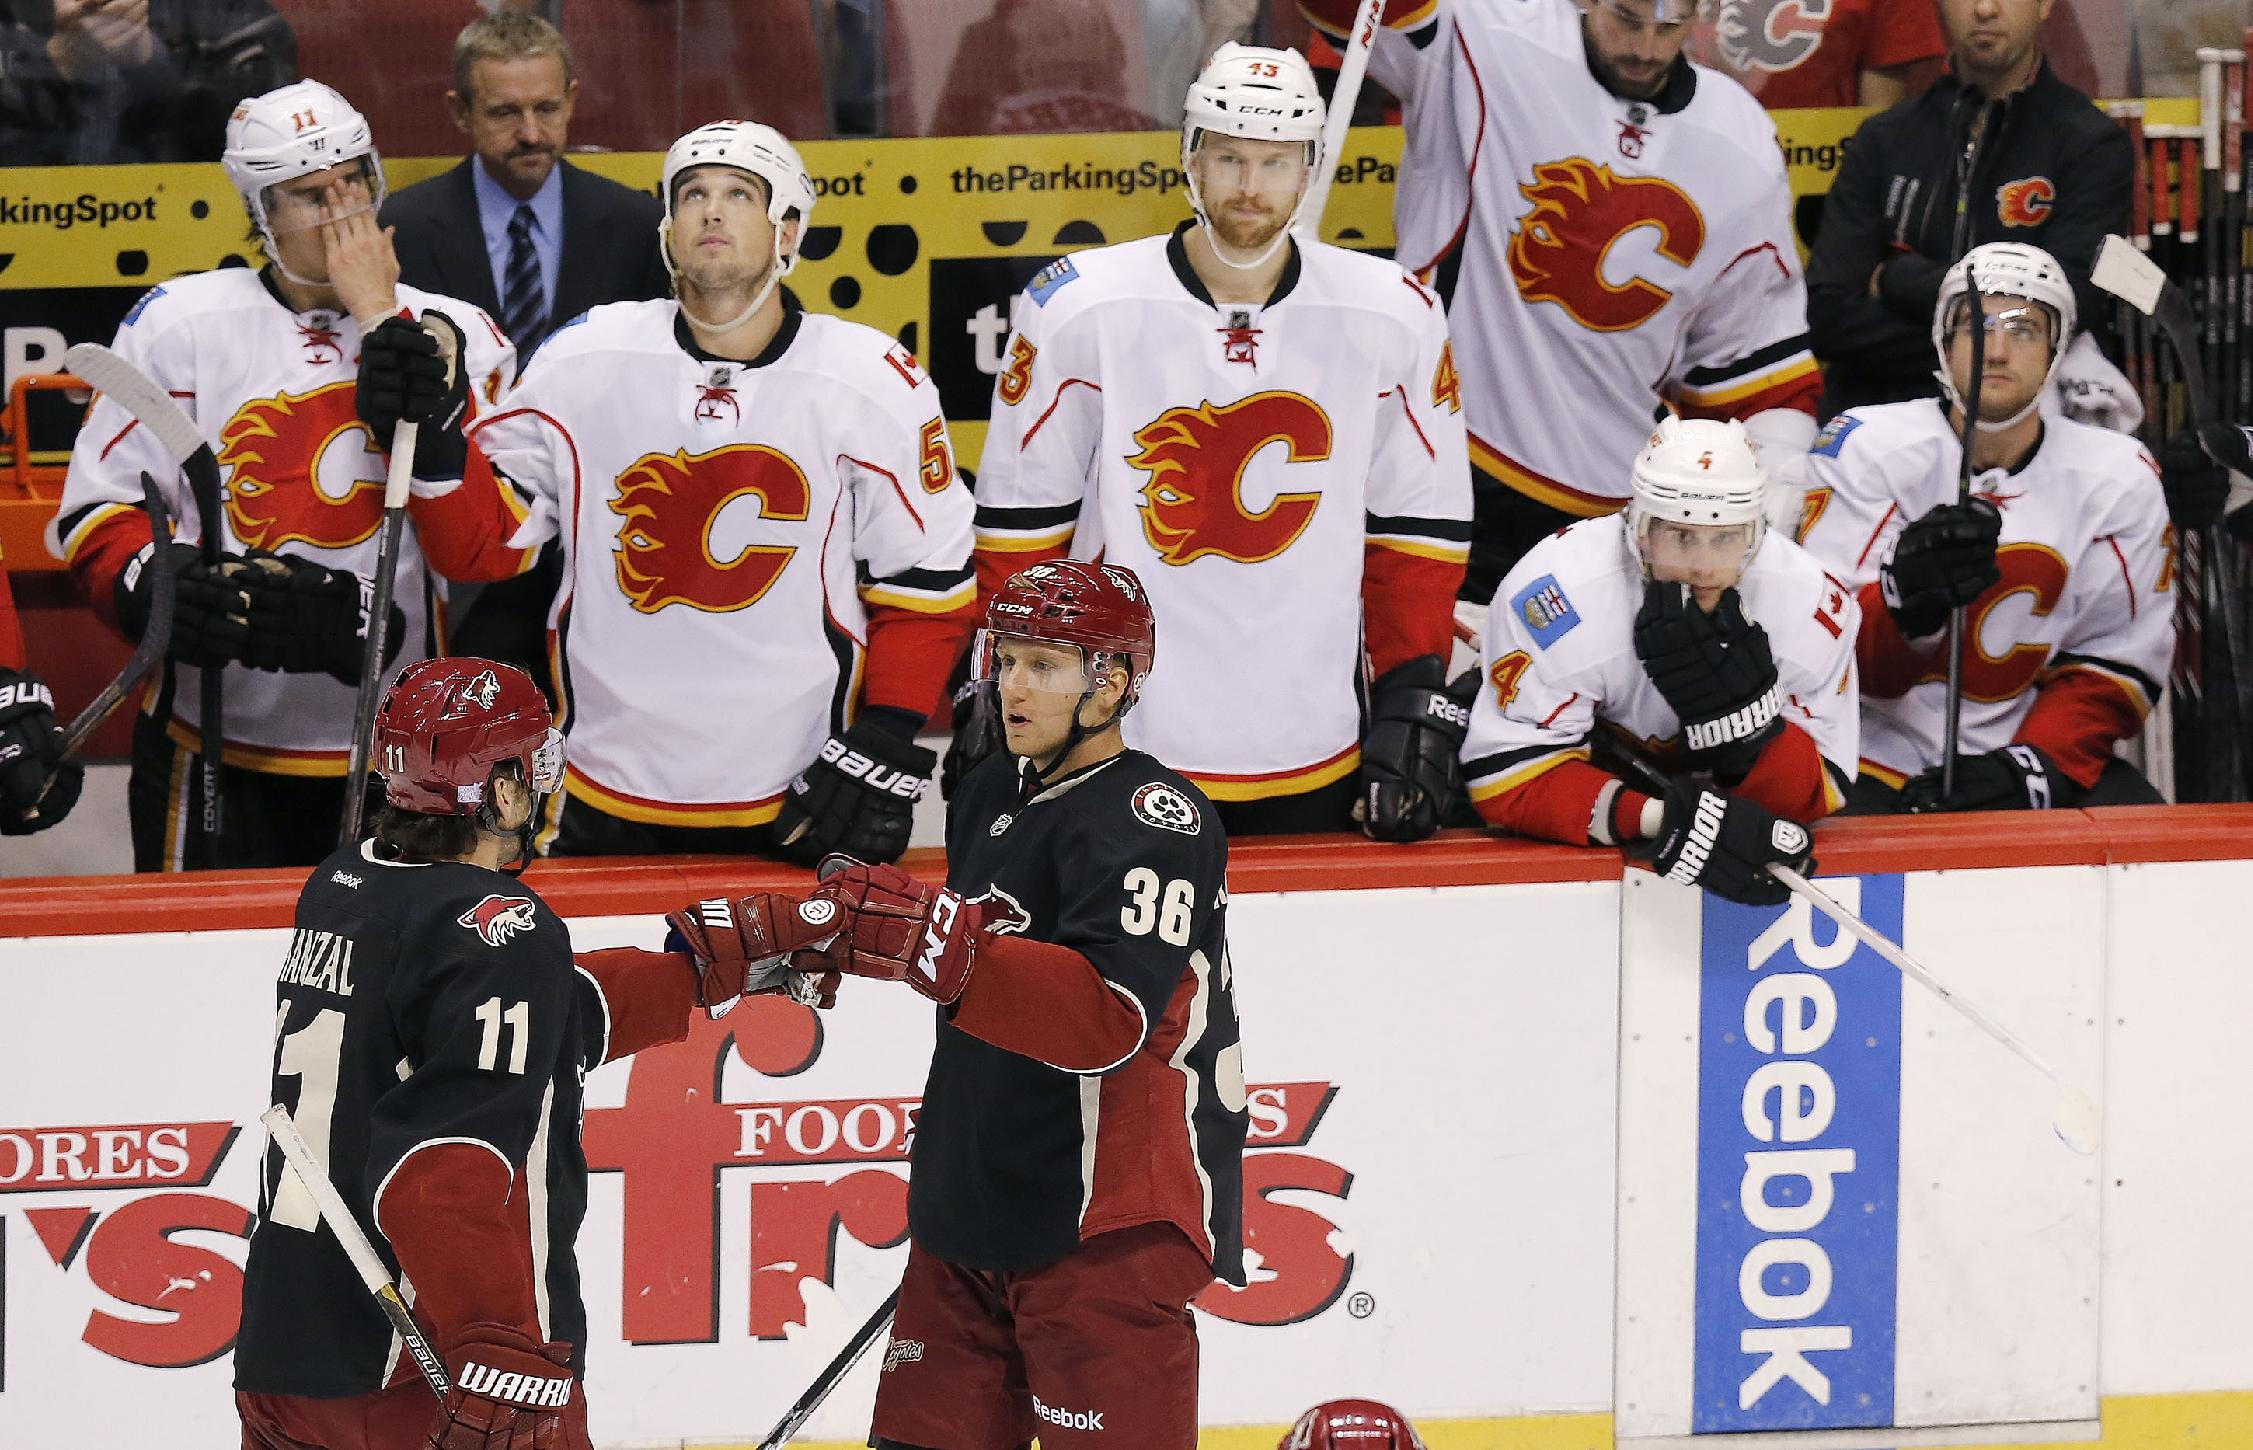 Phoenix Coyotes' Rob Klinkhammer (36) celebrates his empty net goal with teammate Martin Hanzal (11), of the Czech Republic, as Calgary players, from left to right, Mikael Backlund, of Sweden, Shane O'Brien, Chris Breen, Kris Russell, and T.J. Brodie all look on from the bench during the third period of an NHL hockey game on Tuesday Oct. 22, 2013, in Glendale, Ariz.  The Coyotes defeated the Flames 4-2